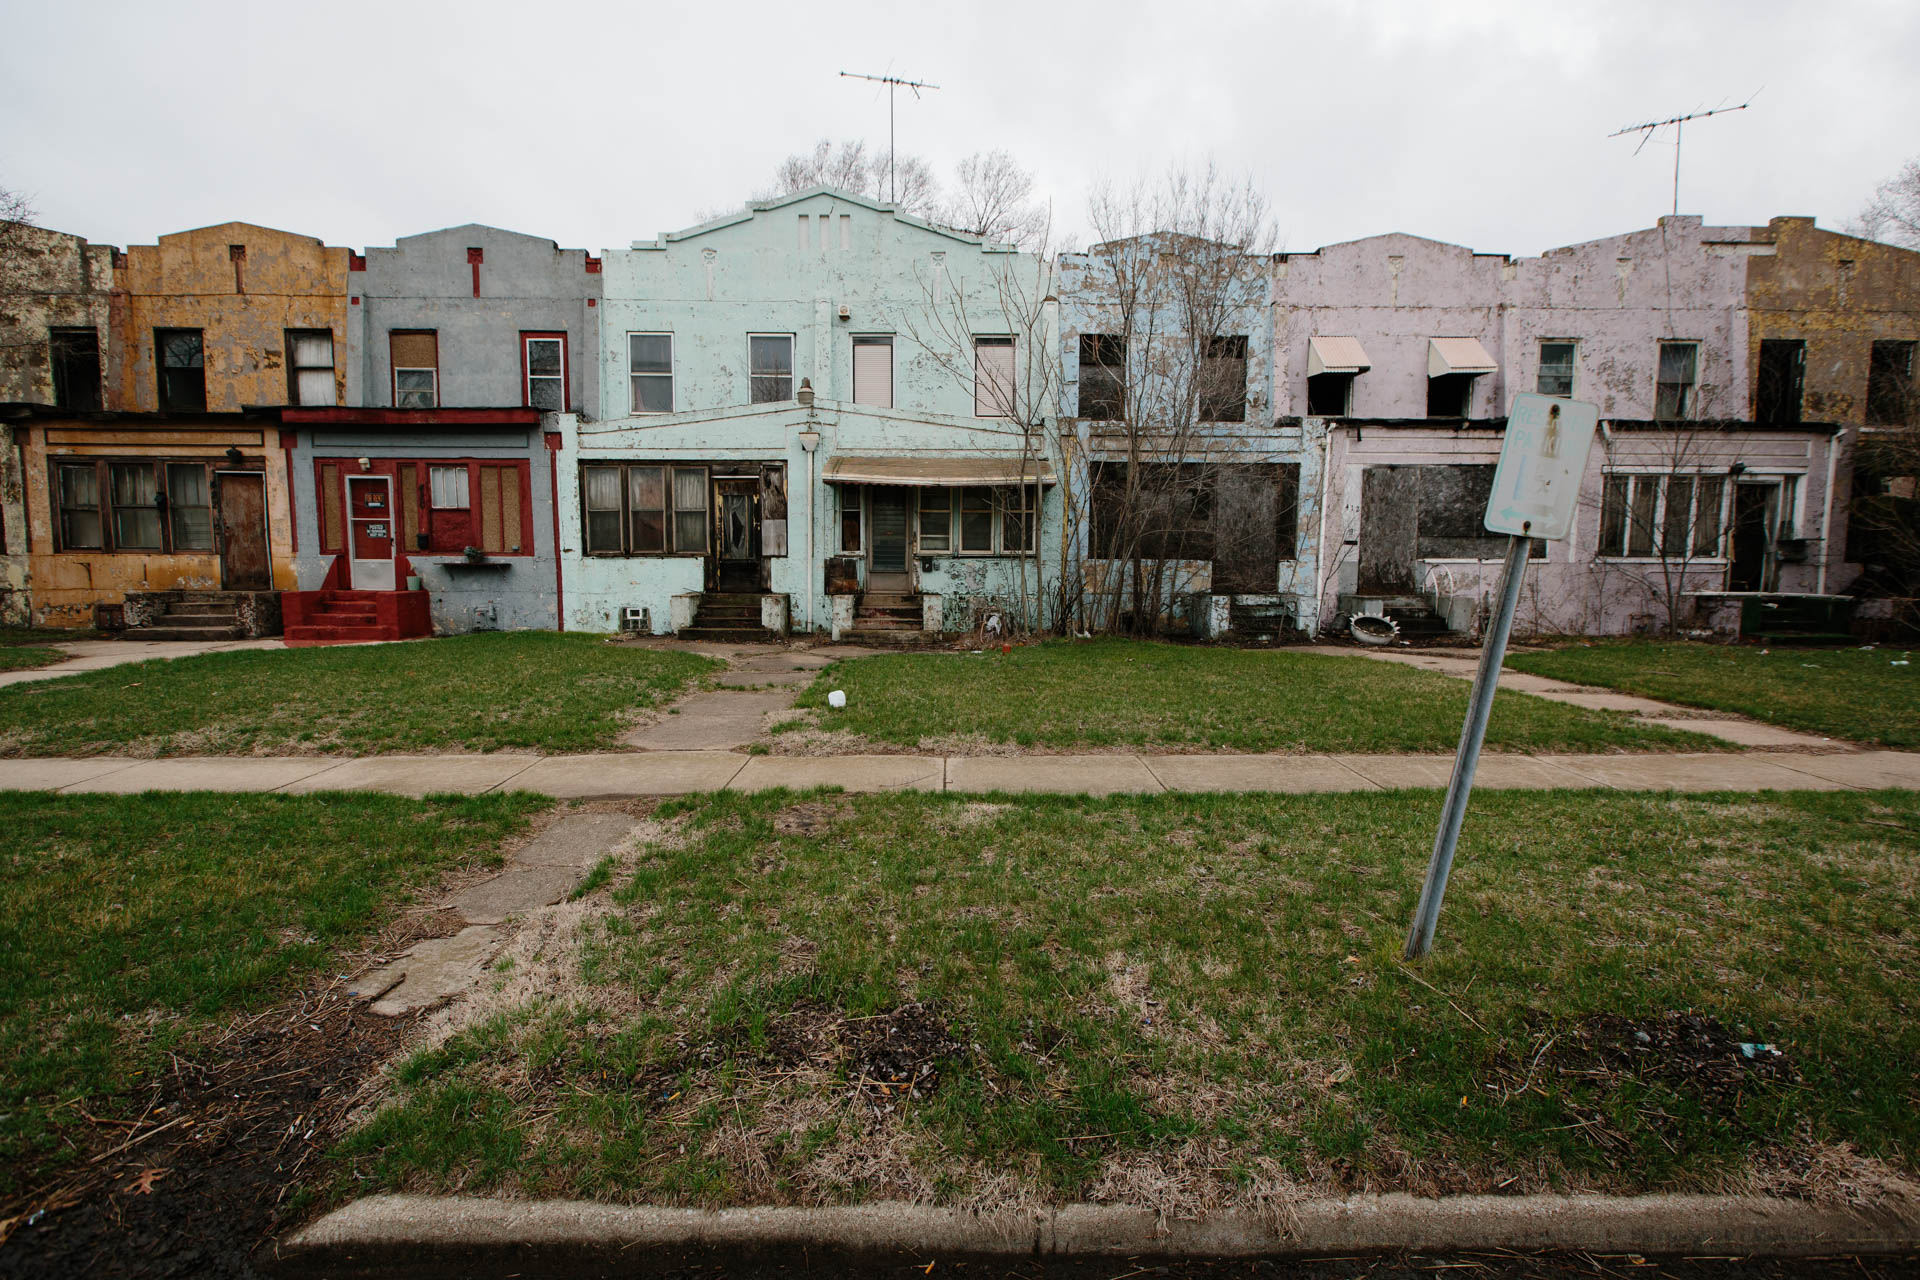 row-of-colorful-decaying-homes-gary-ind